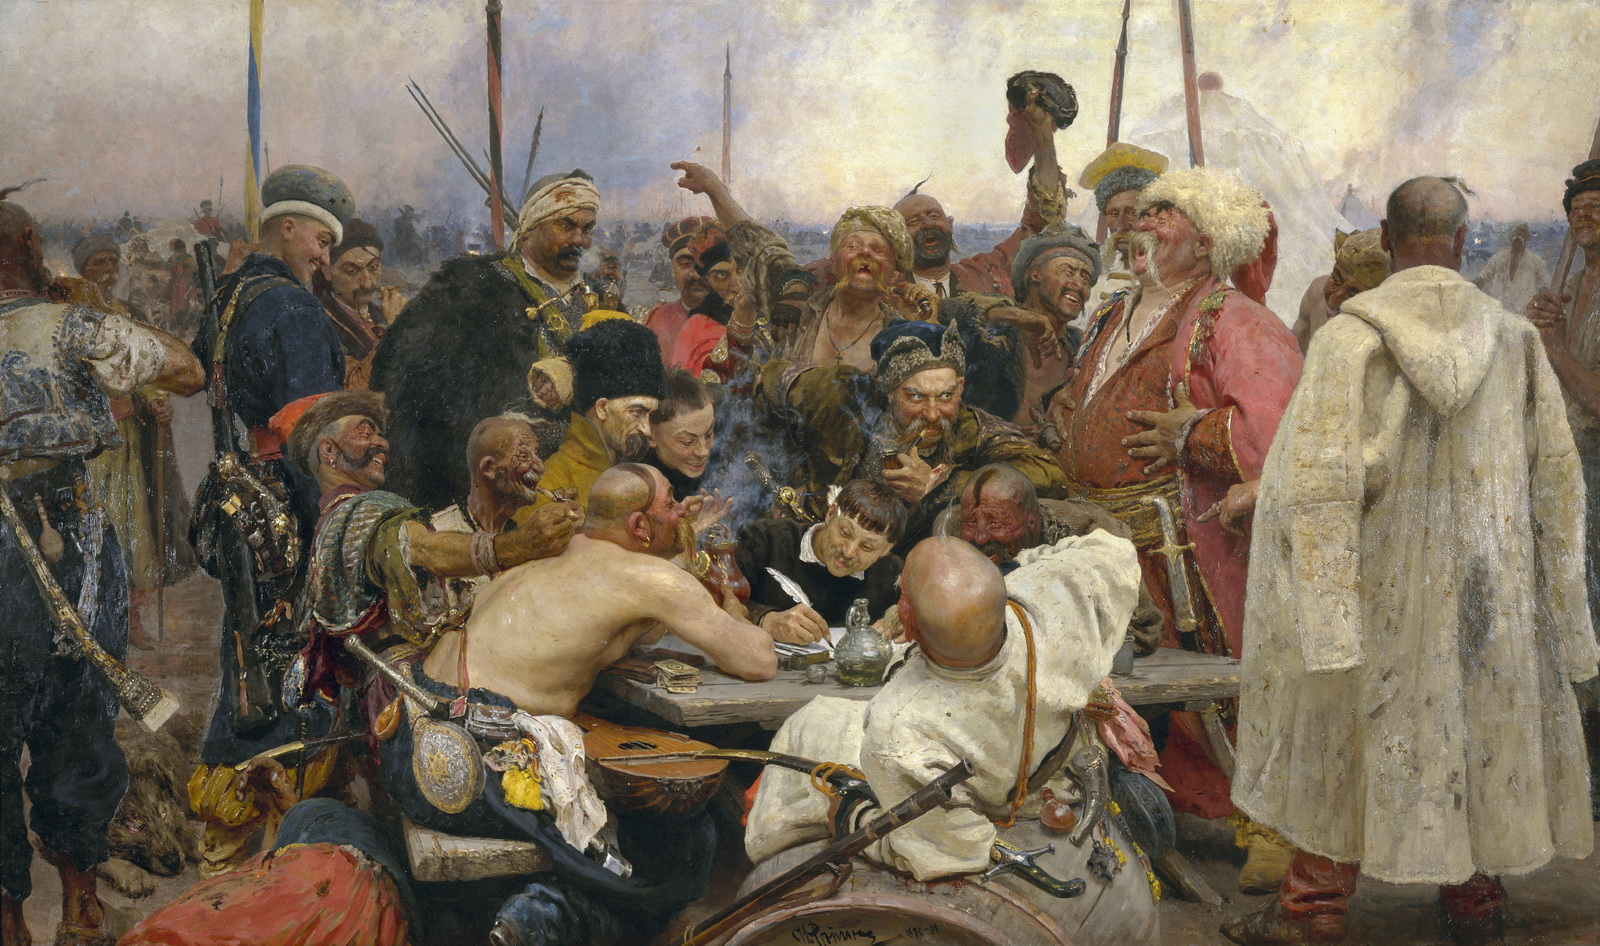 Repin - Reply of the Zaporozhian Cossacks - Yorck-1600